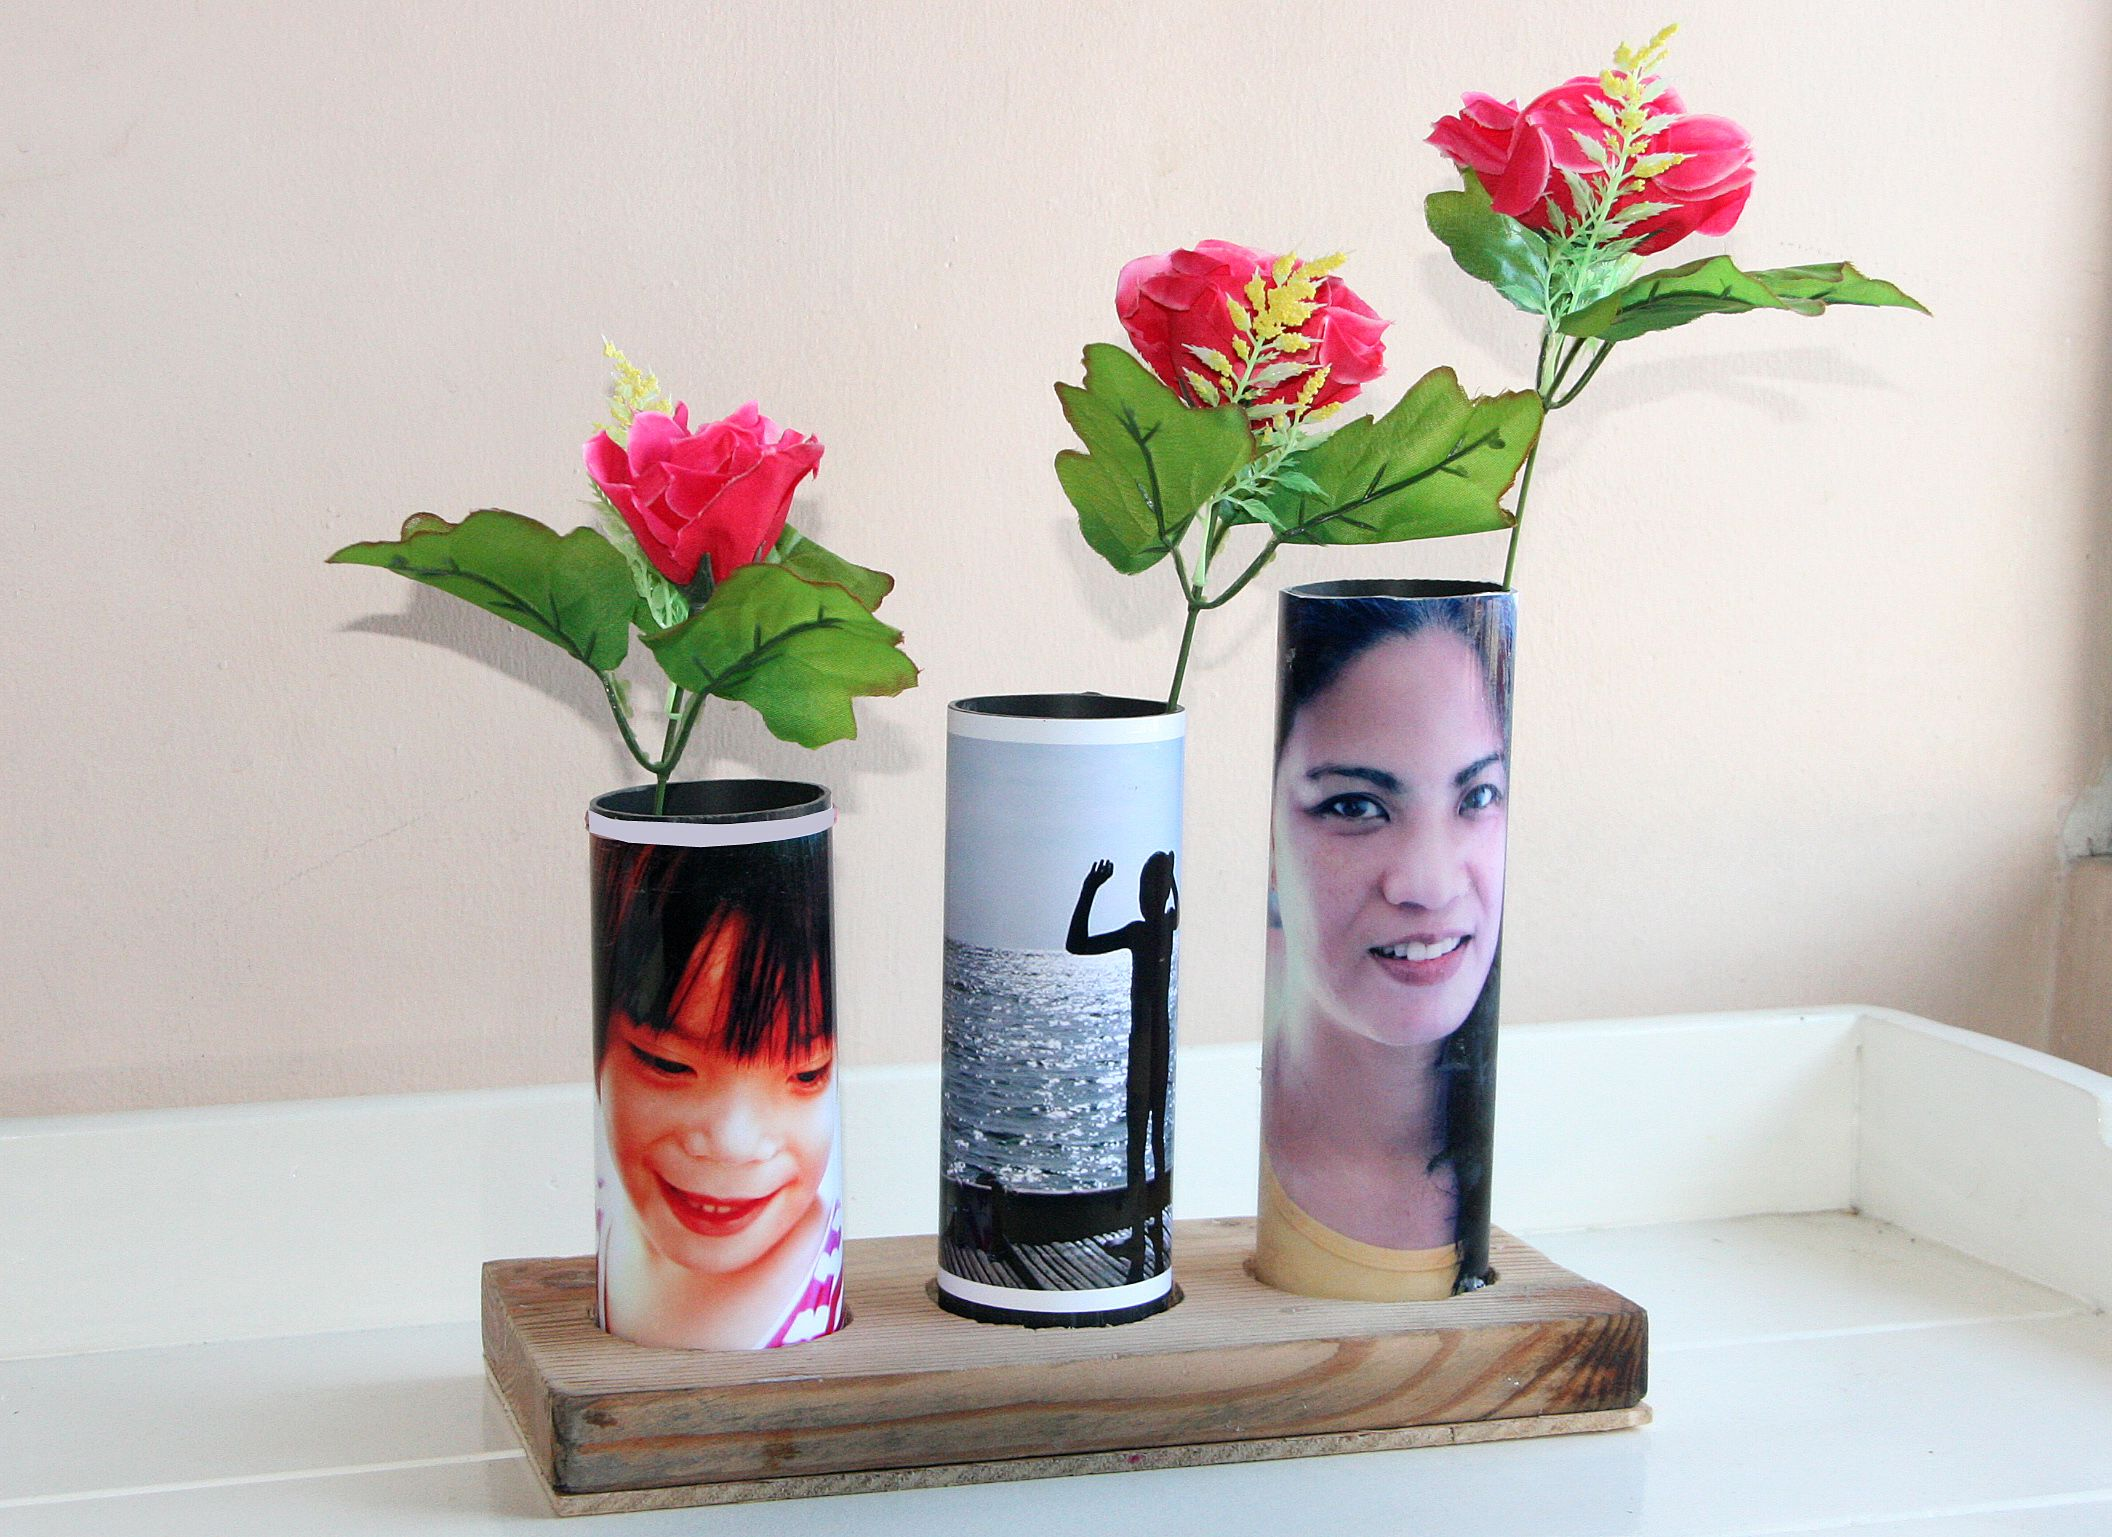 Make a bud vase from a pvc pipe pvc pipe pipes and craft how to make a bud vase from a pvc pipe via wikihow reviewsmspy